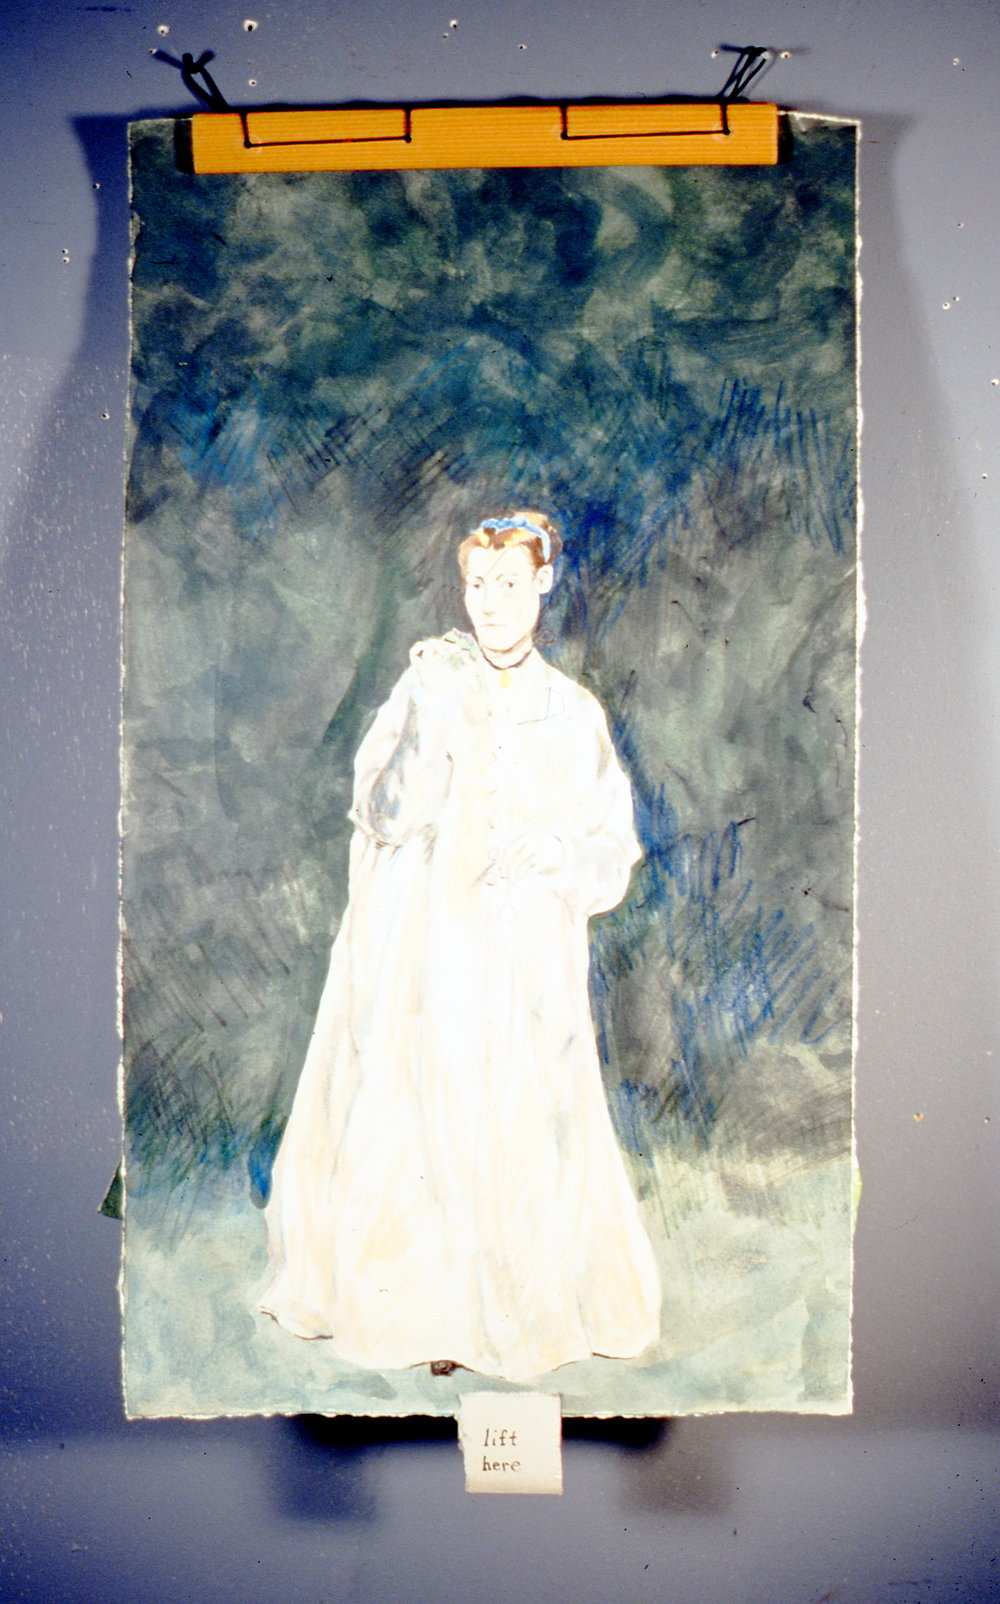 "Woman with a Flower, 2000, Richard Motchman, mixed media on paper, 17"" x 9 1/4"", 2000.02.02, gift of the artist"